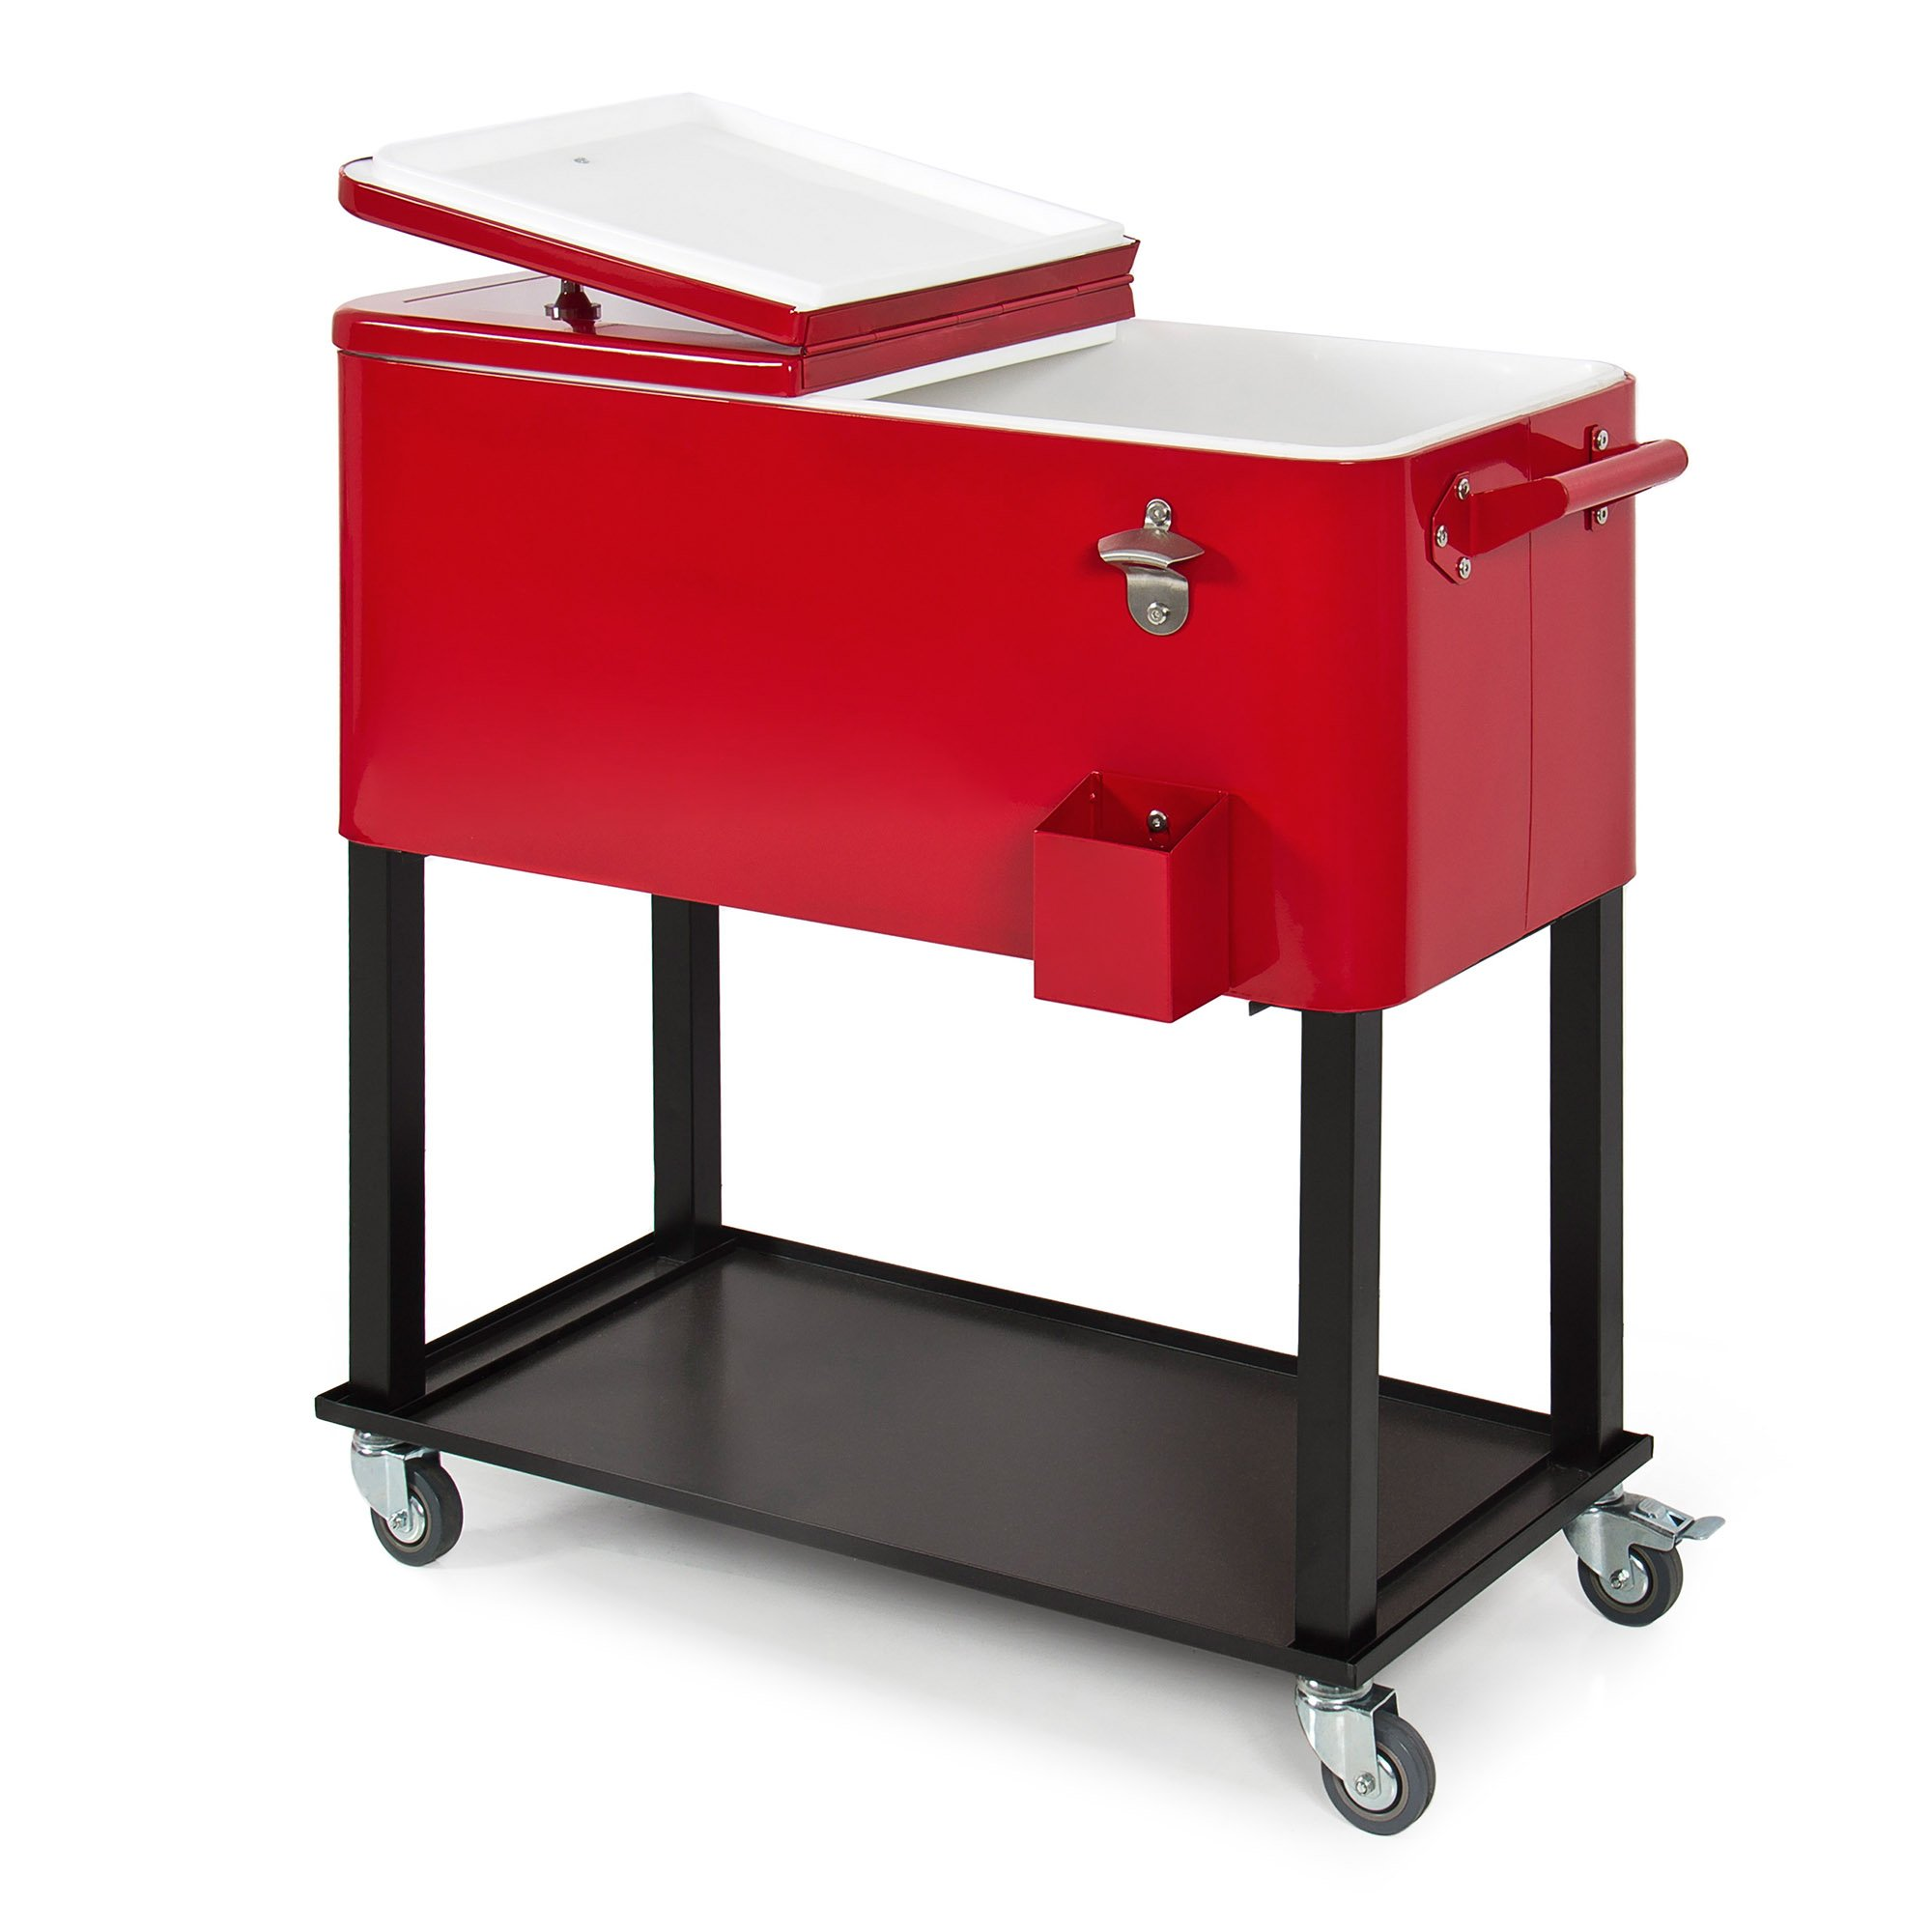 Best Choice Products 80-Quart Steel Outdoor Rolling Cooler Cart w/ Bottle Opener and Catch Tray, Drain Plug, Locking Wheels by Best Choice Products